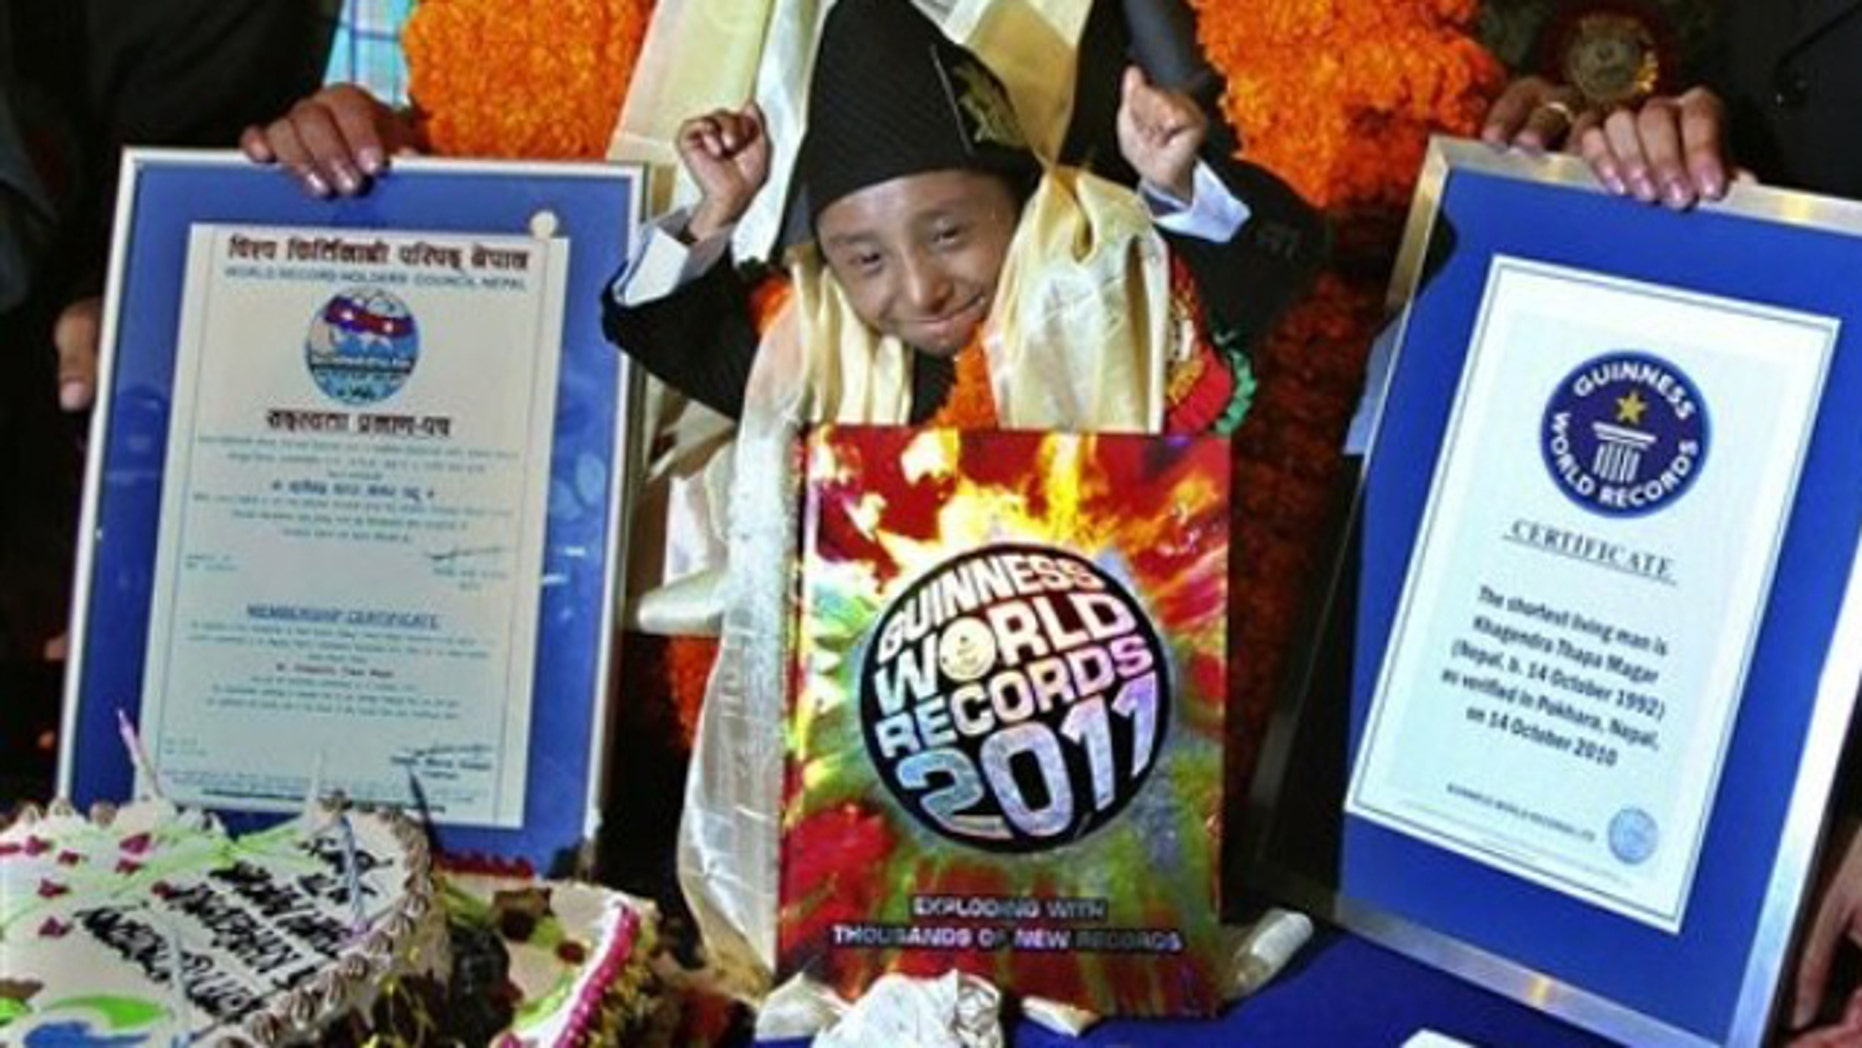 Oct. 14: Nepal's Khagendra Thapa Magar celebrates after being awarded the title of the world's shortest man by Guinness record officials, in Pokhara, 124 miles west of Katmandu, Nepal.